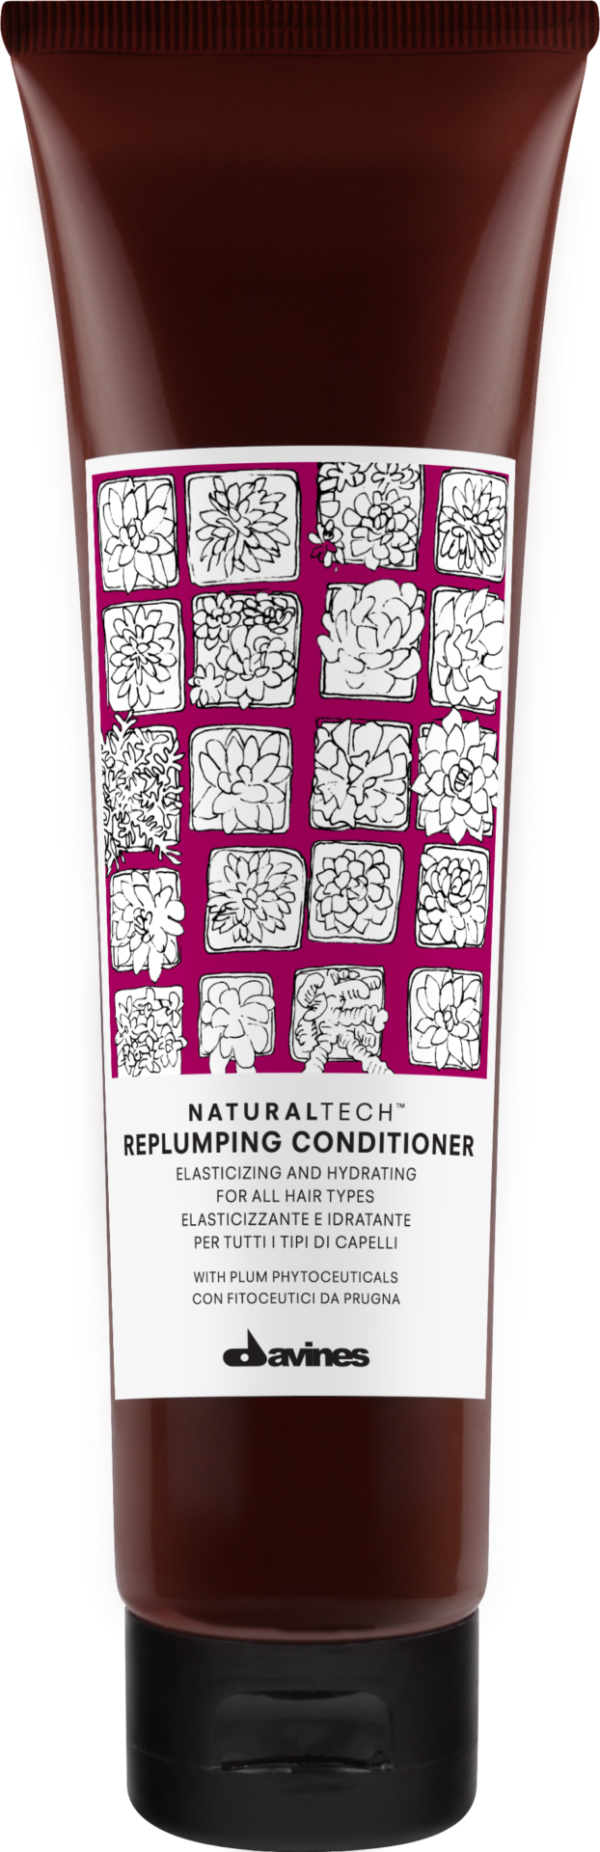 Davines Natural Tech Replumping Conditioner